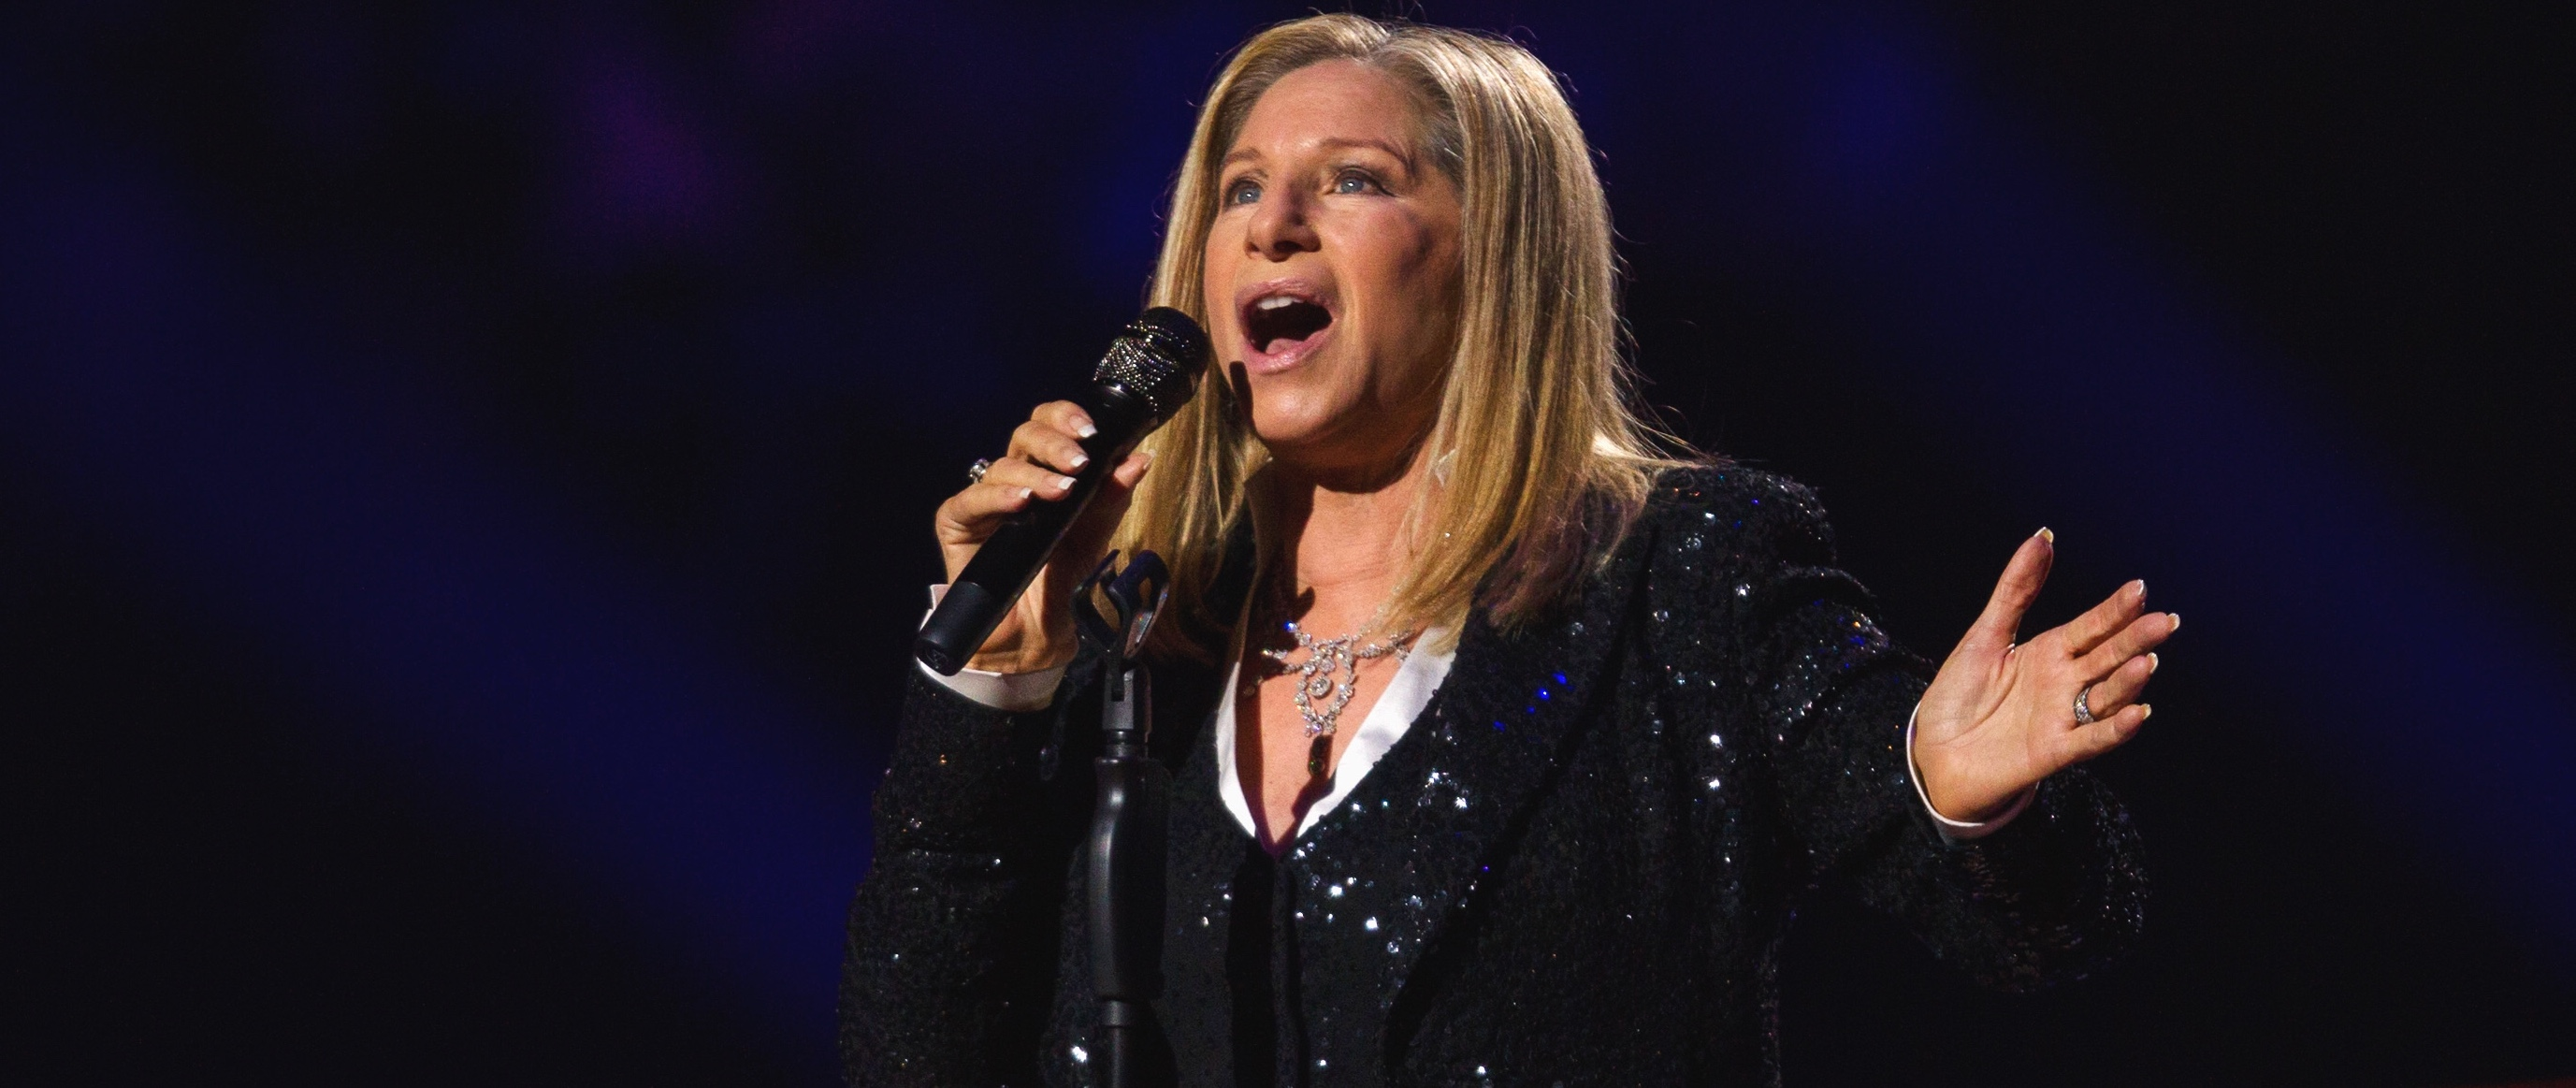 'Don't Lie To Me': Barbra Streisand, Who Said Men Don't Want To Believe Women, To Attend Biden Event